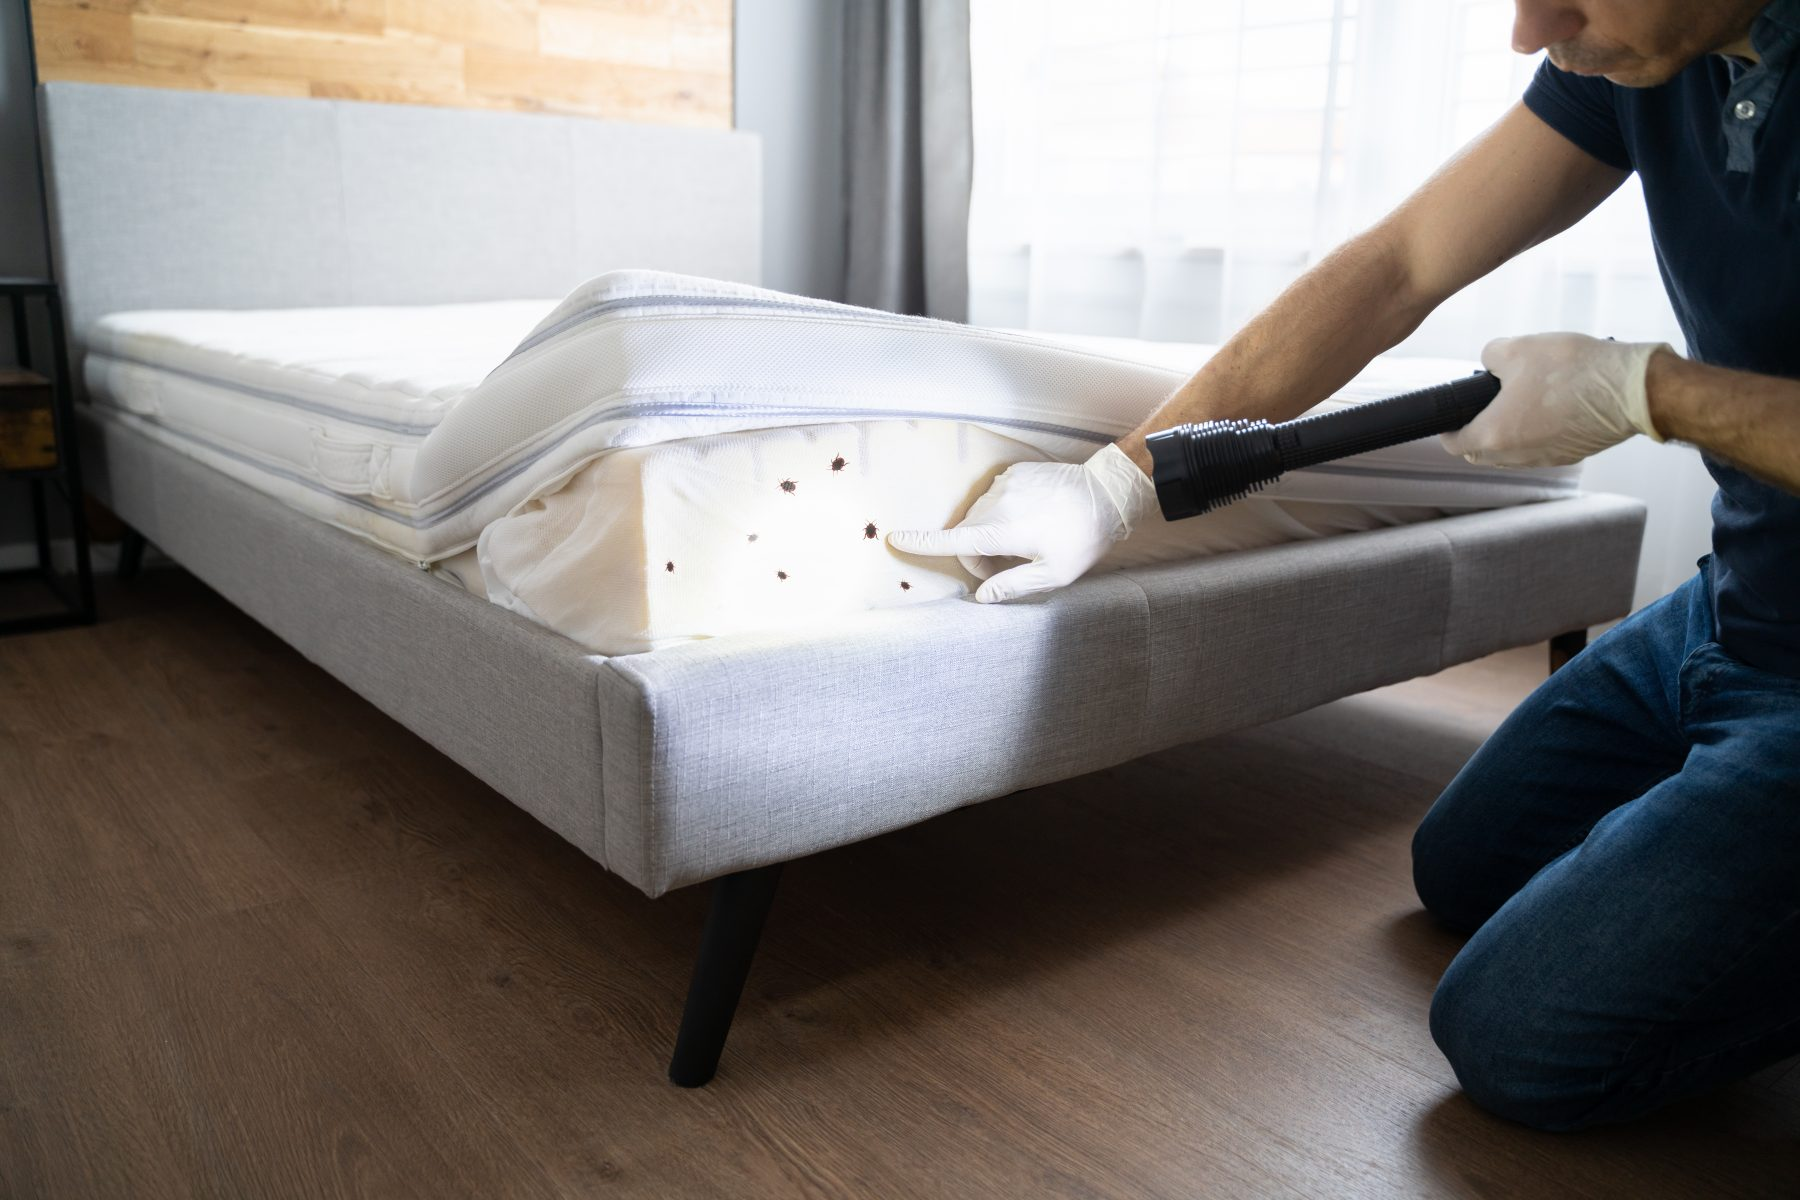 Man pointing out bed bugs with flashlight on inside of mattress